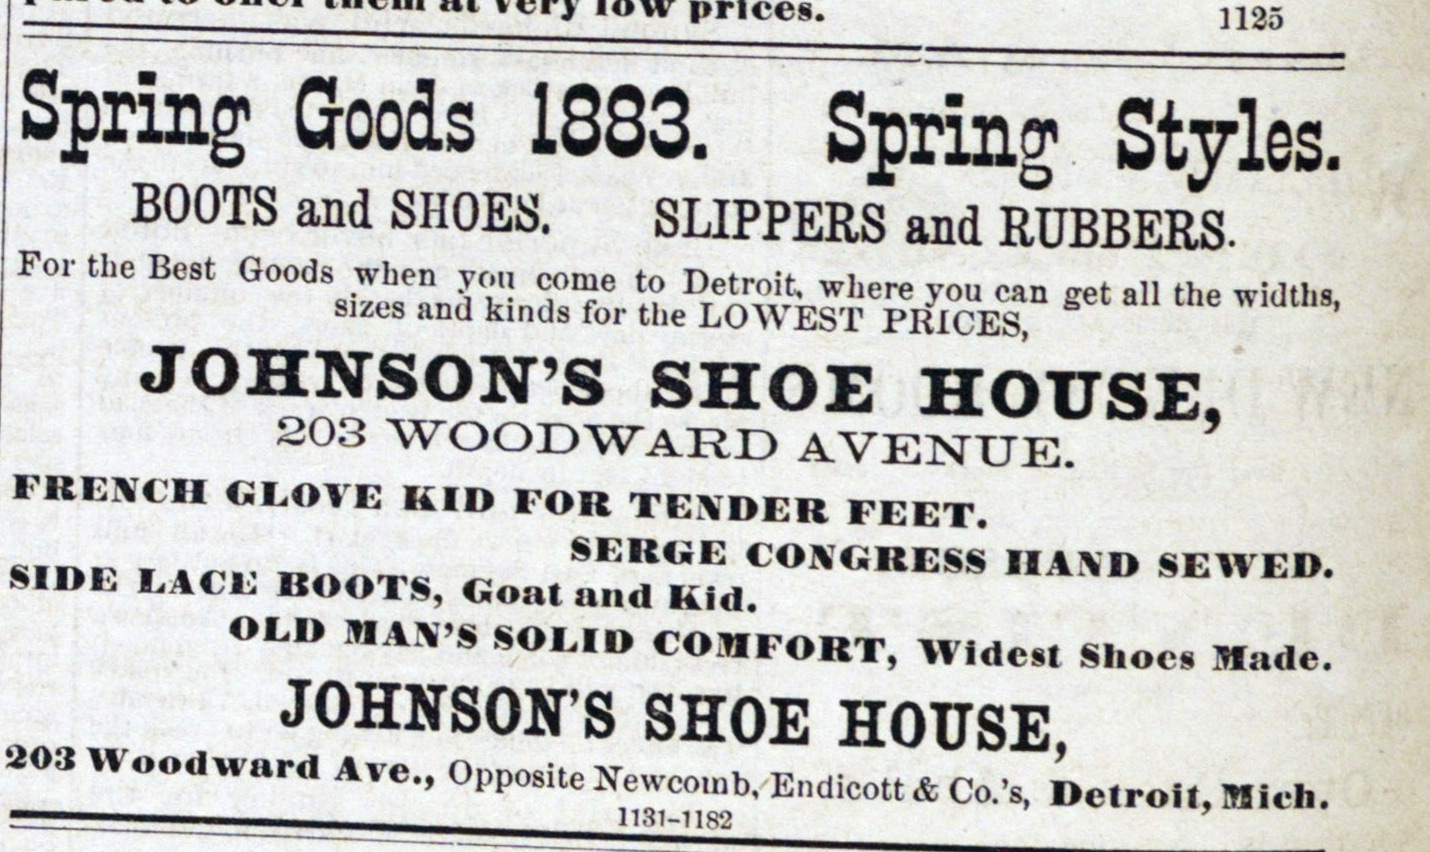 Spring Goods 1883. Spring Styles image